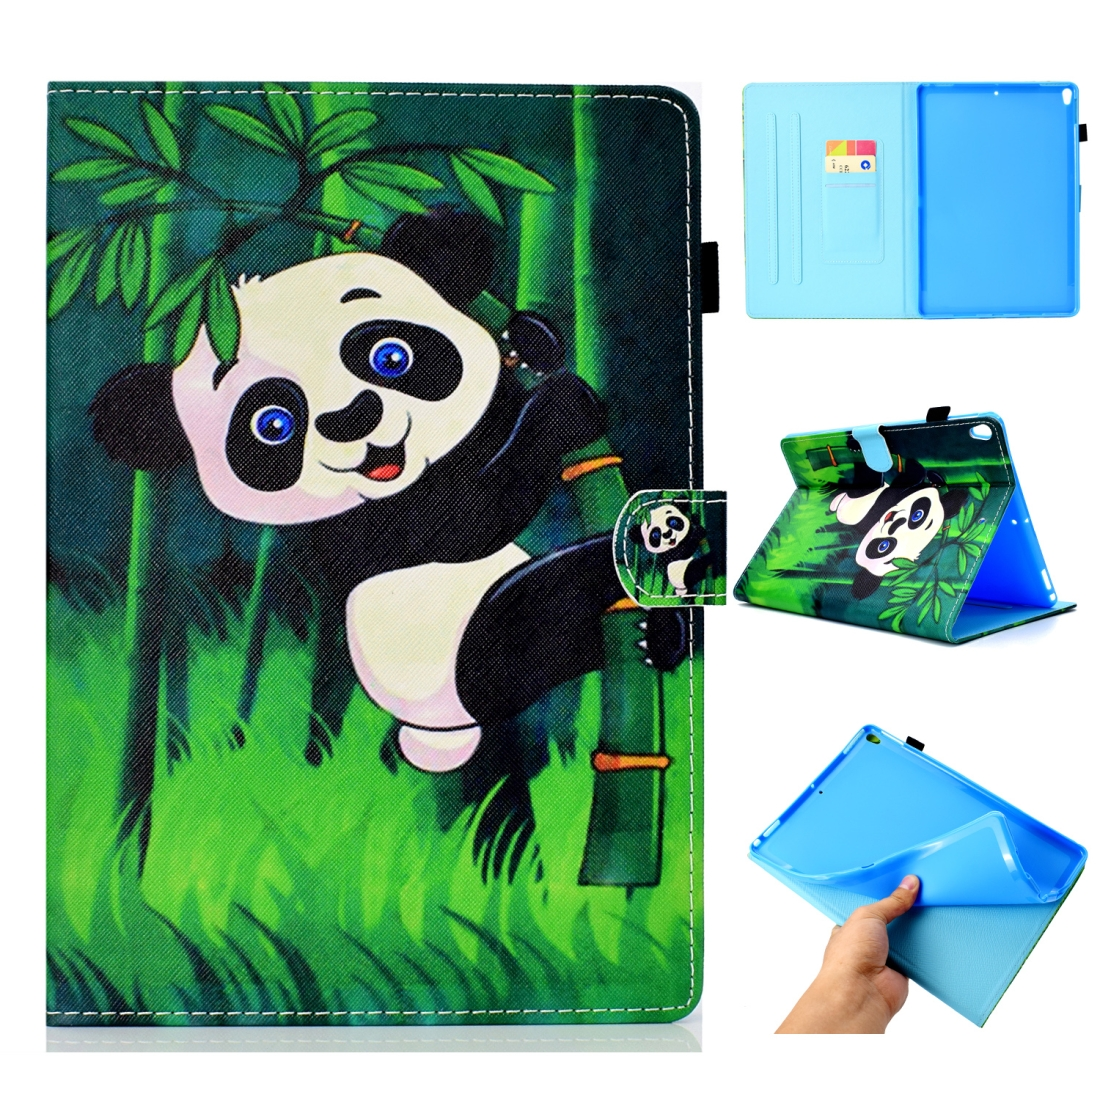 Artsy Leather iPad Air 3 Case (10.5 Inch) 2017/2019 Artsy Design & Auto Sleep Function (Panda)